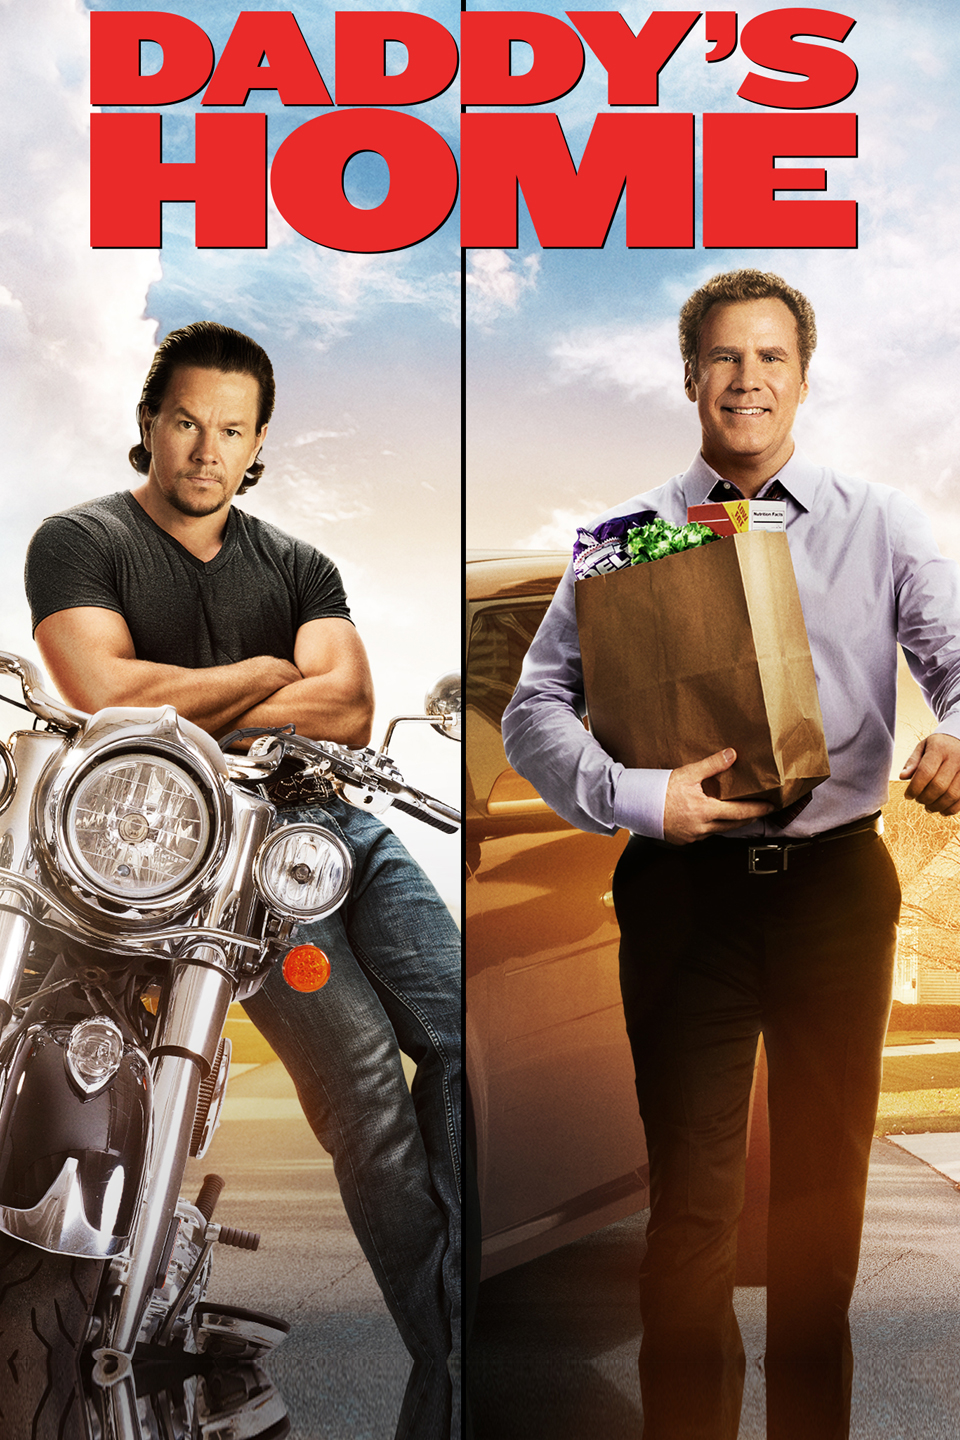 Daddy's-Home-960x1440-Portrate